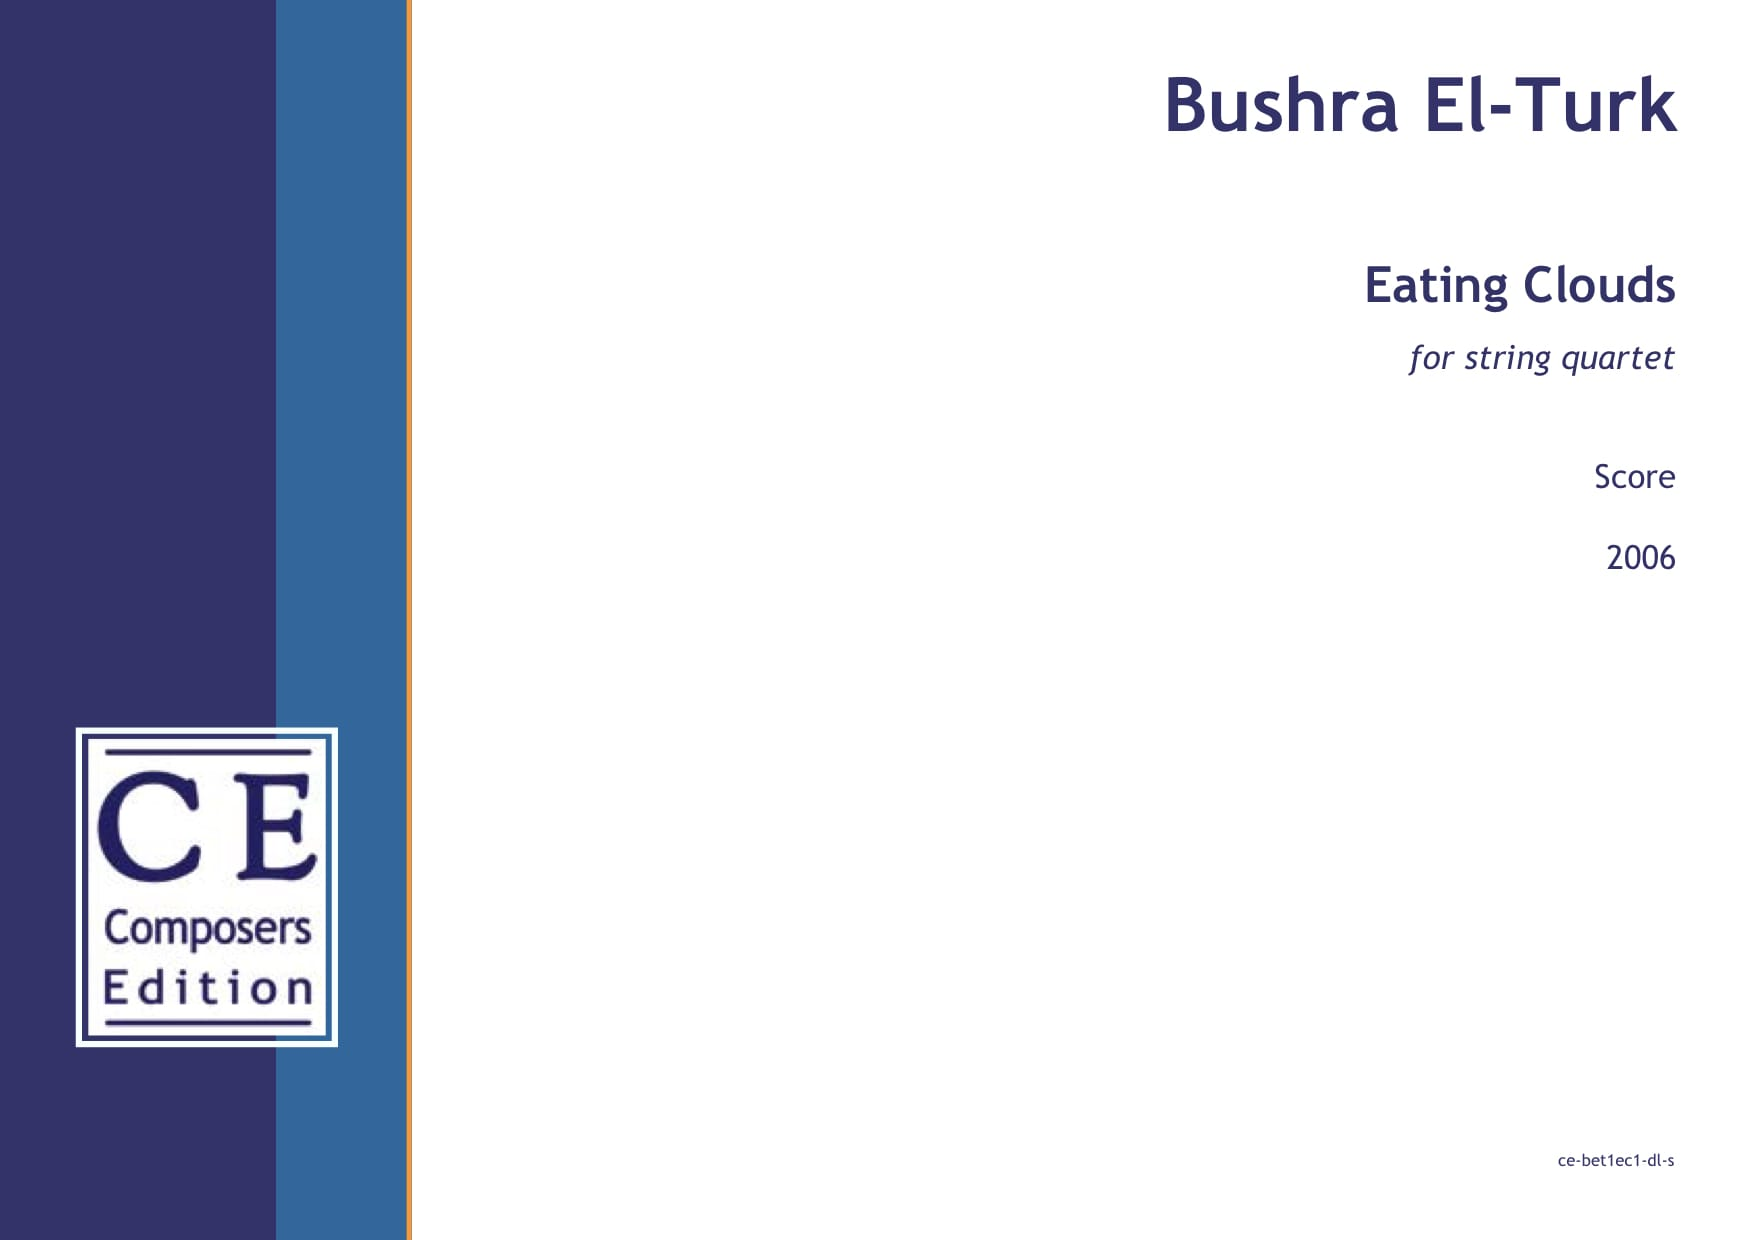 Bushra El-Turk: Eating Clouds for string quartet